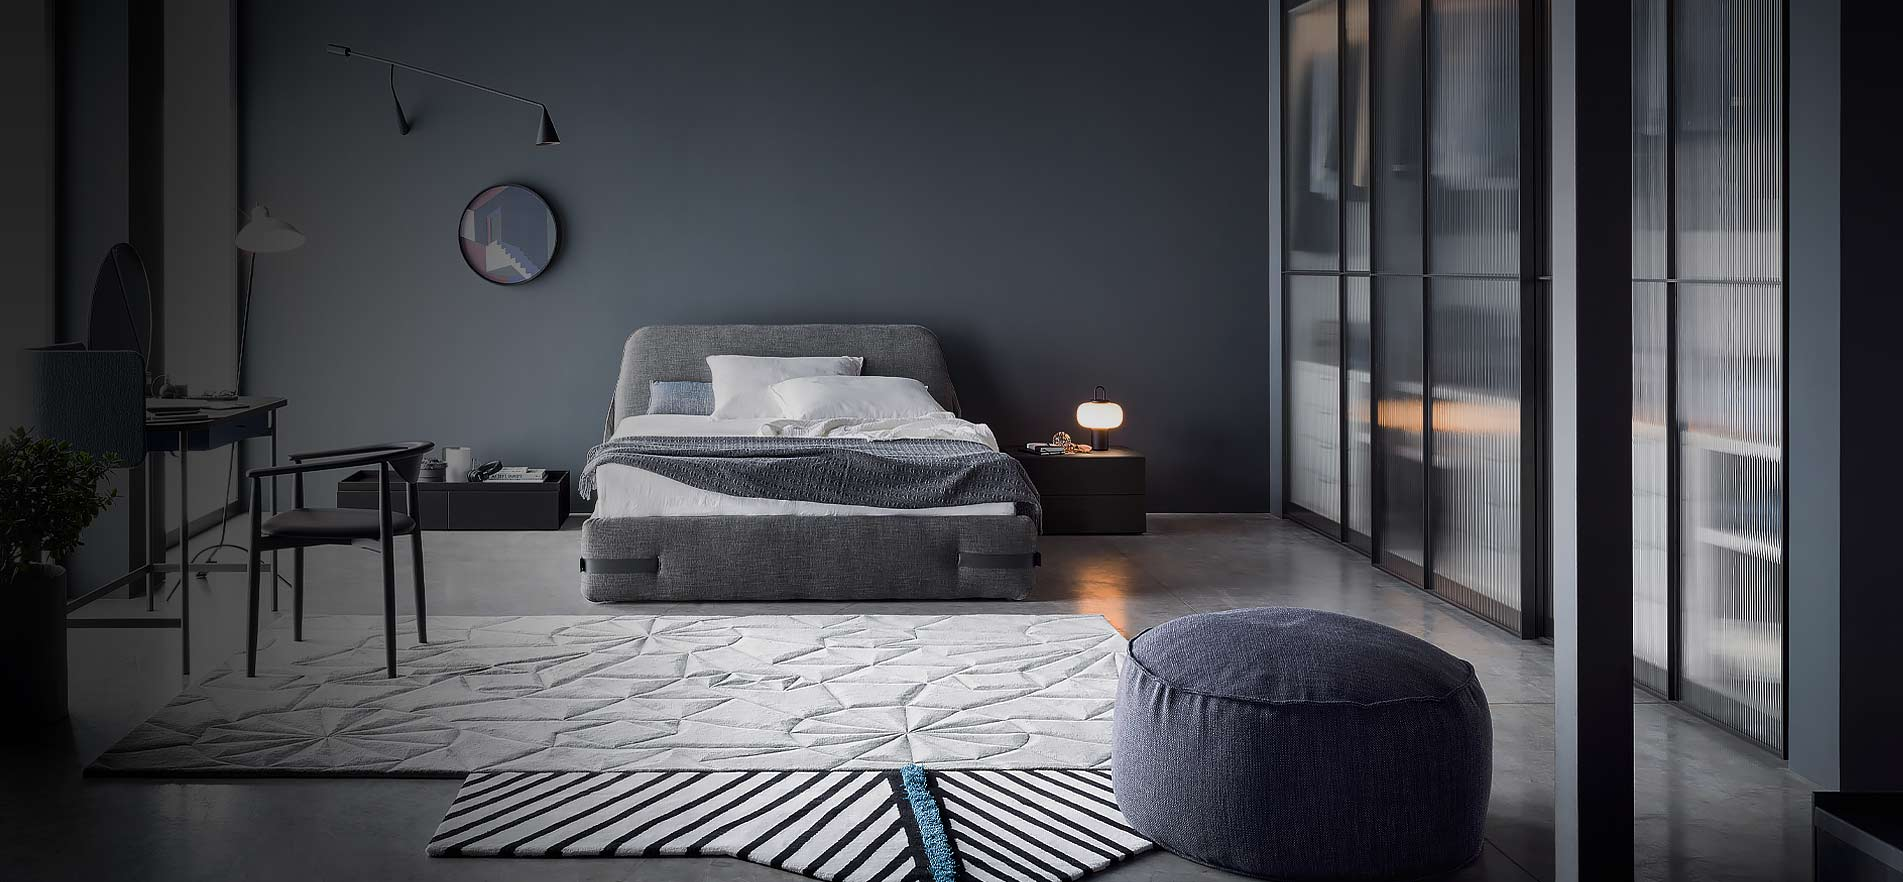 designer betten moderne hochwertig einzigartig. Black Bedroom Furniture Sets. Home Design Ideas